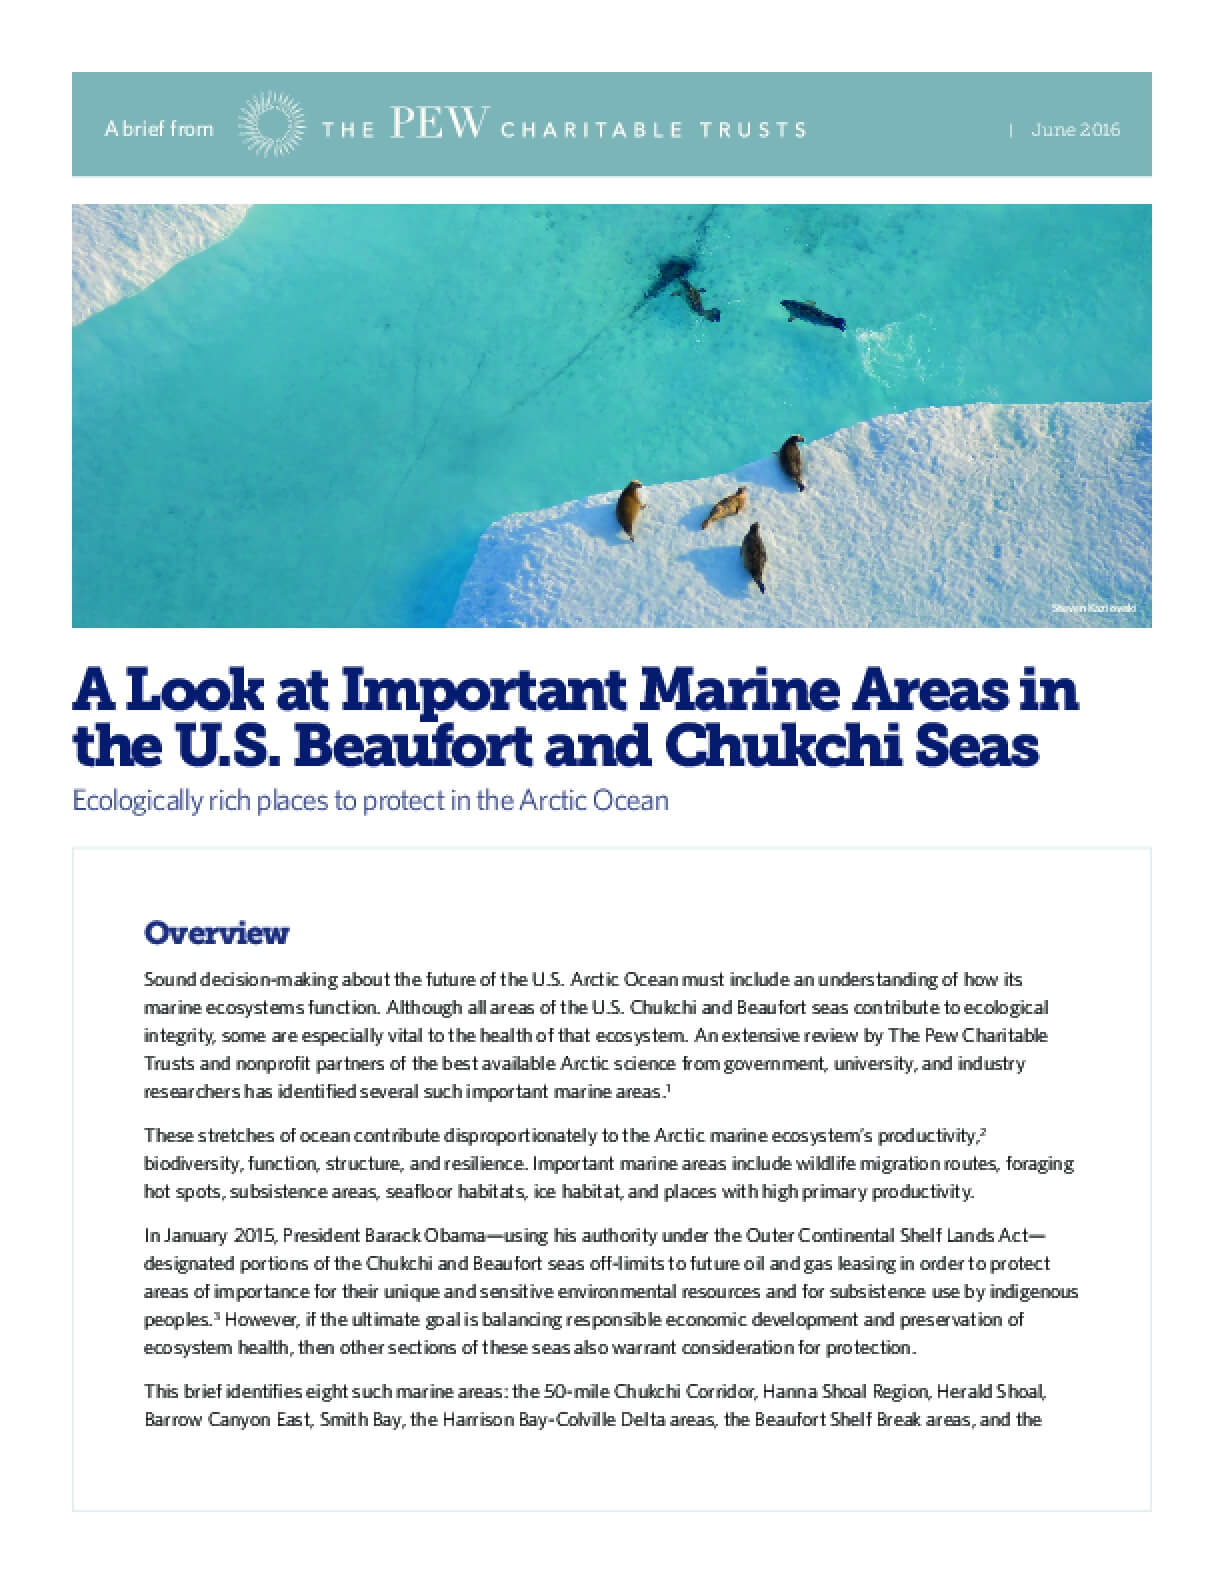 A Look at Important Marine Areas in the U.S. Beaufort and Chukchi Seas: Ecologically rich places to protect in the Arctic Ocean